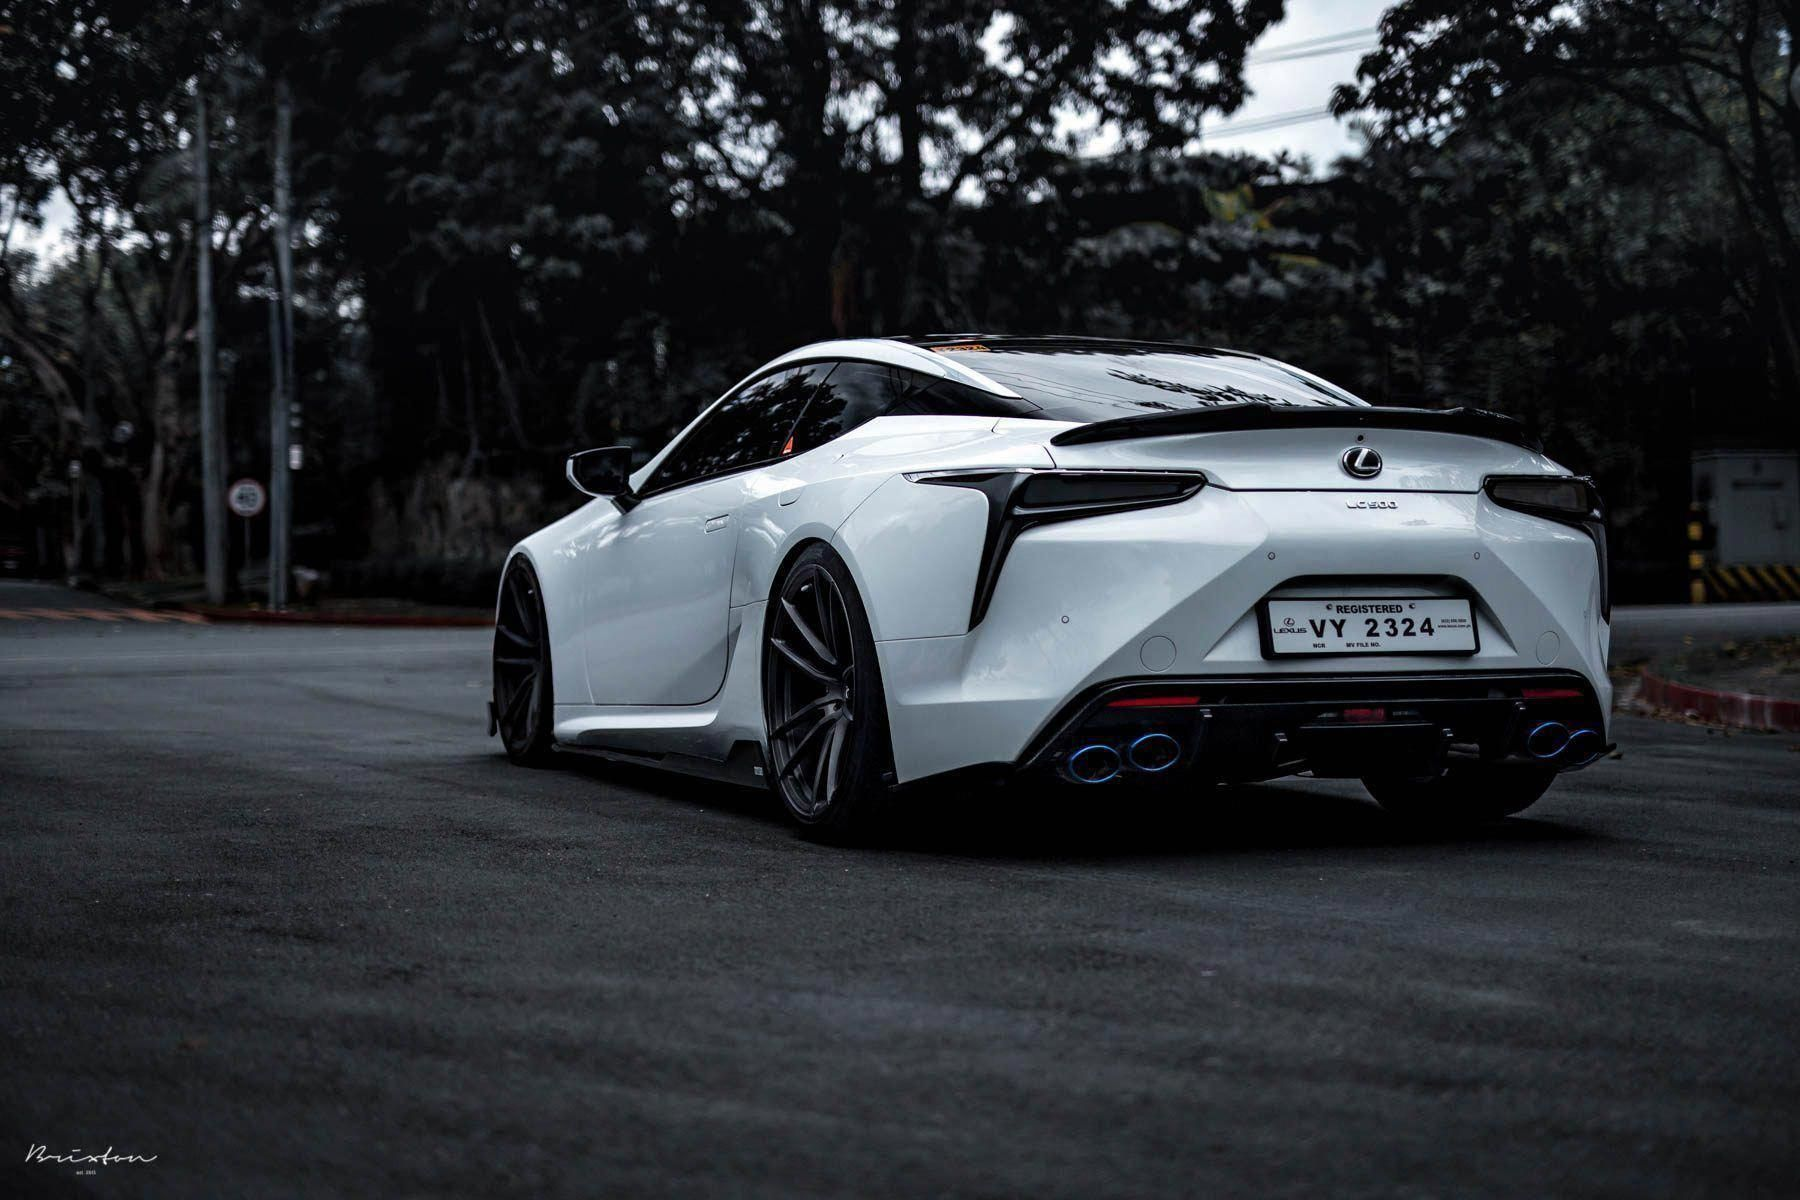 Lexus Lc500 With Brixton Forged M53 Ultrasport Wheels Newsportscars Luxurysportcar Newsportscars Nicesportscars Sport Super Sport Cars Lexus Car Models Lexus